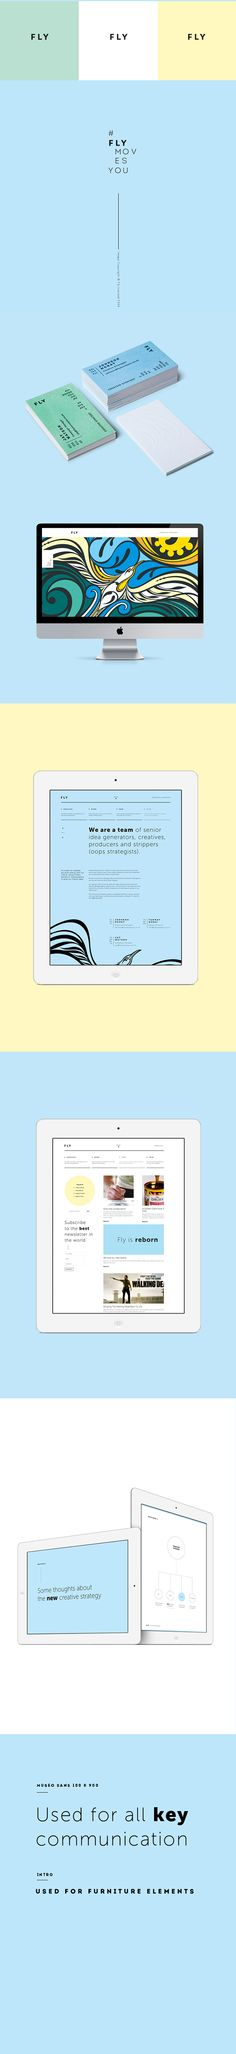 Fly: Branding by Tanmay Desai, via Behance